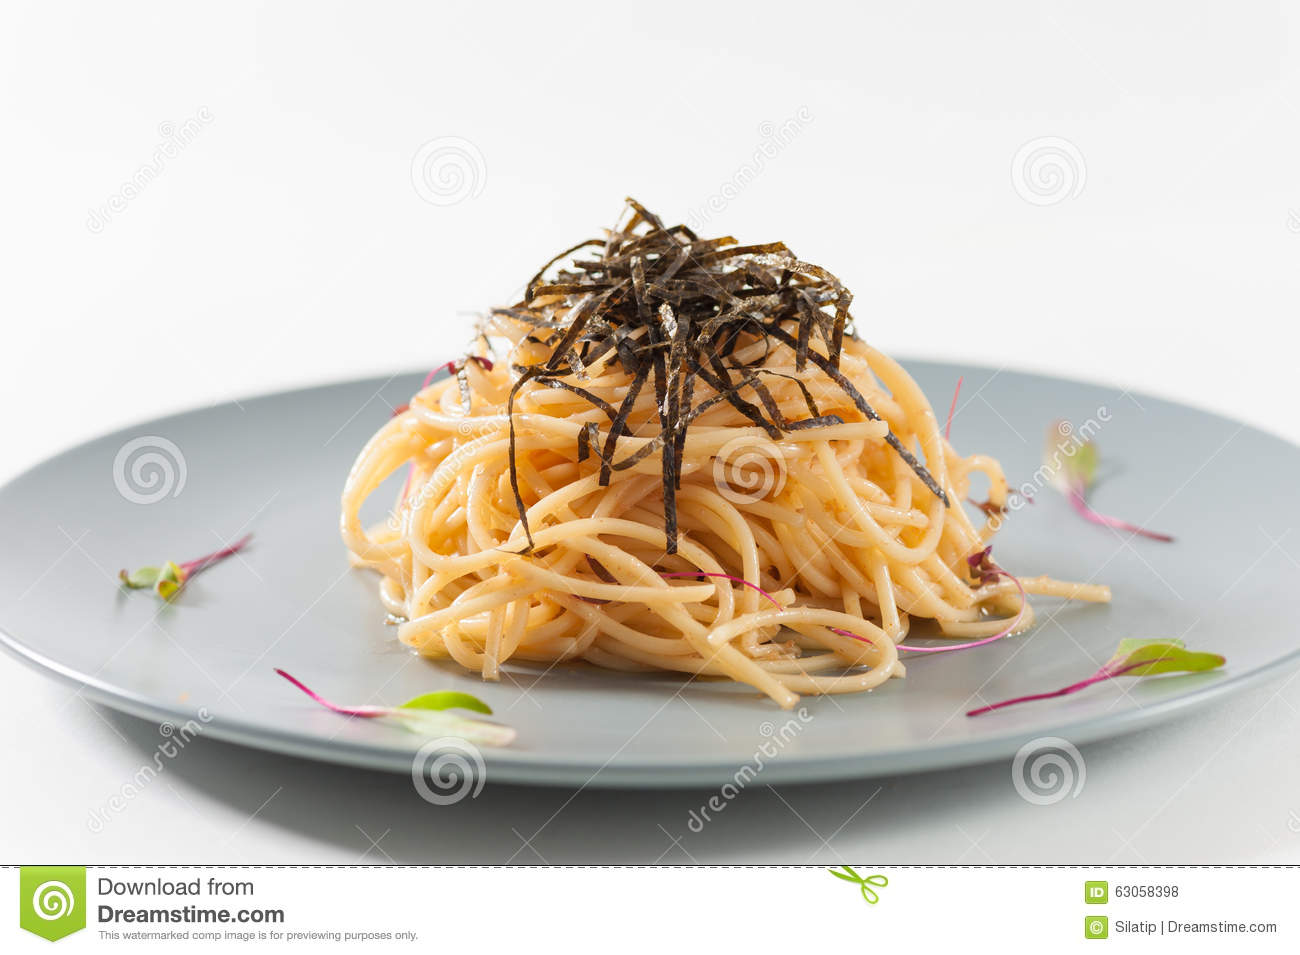 Pasta with Mentaiko (Cod fish's roe) sauce, Japanese food in European ...